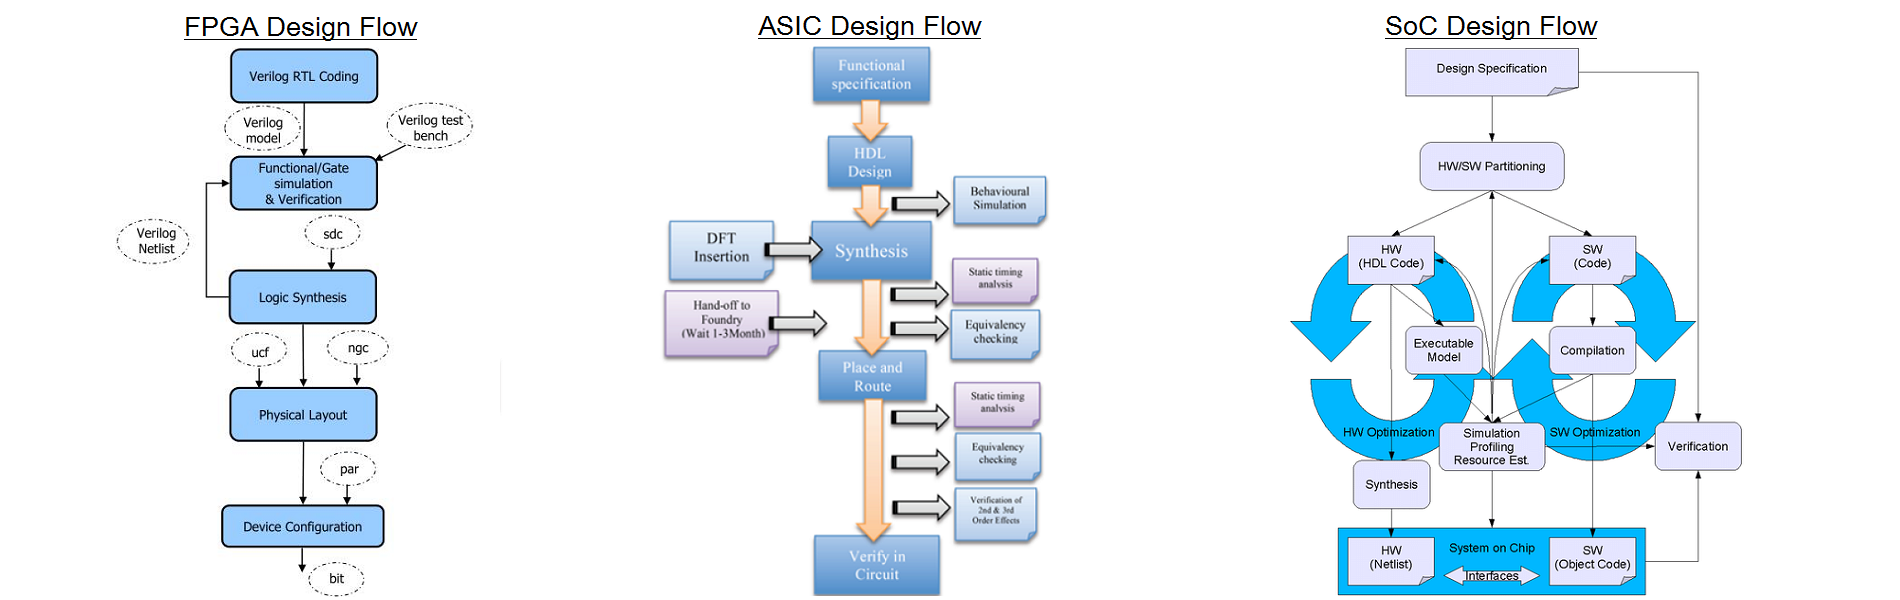 FPGA/ASIC/SoC Design Flow